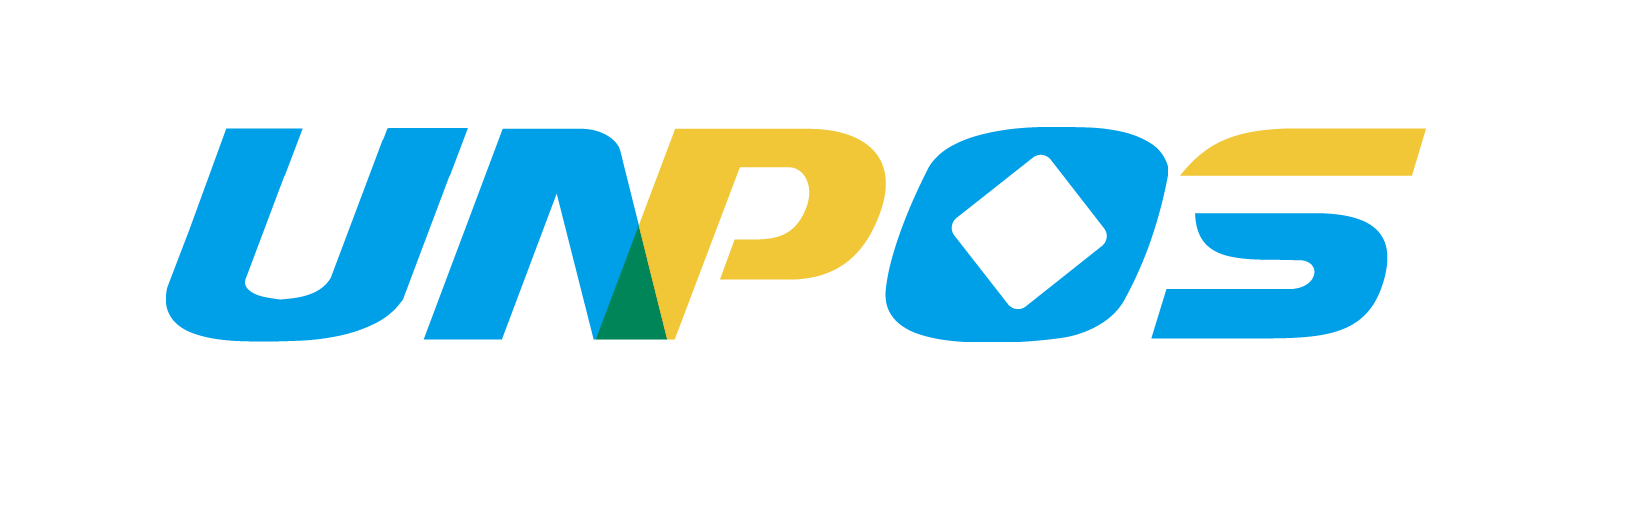 Beijing UNPOS Intelligent Technology Co., Ltd. logo